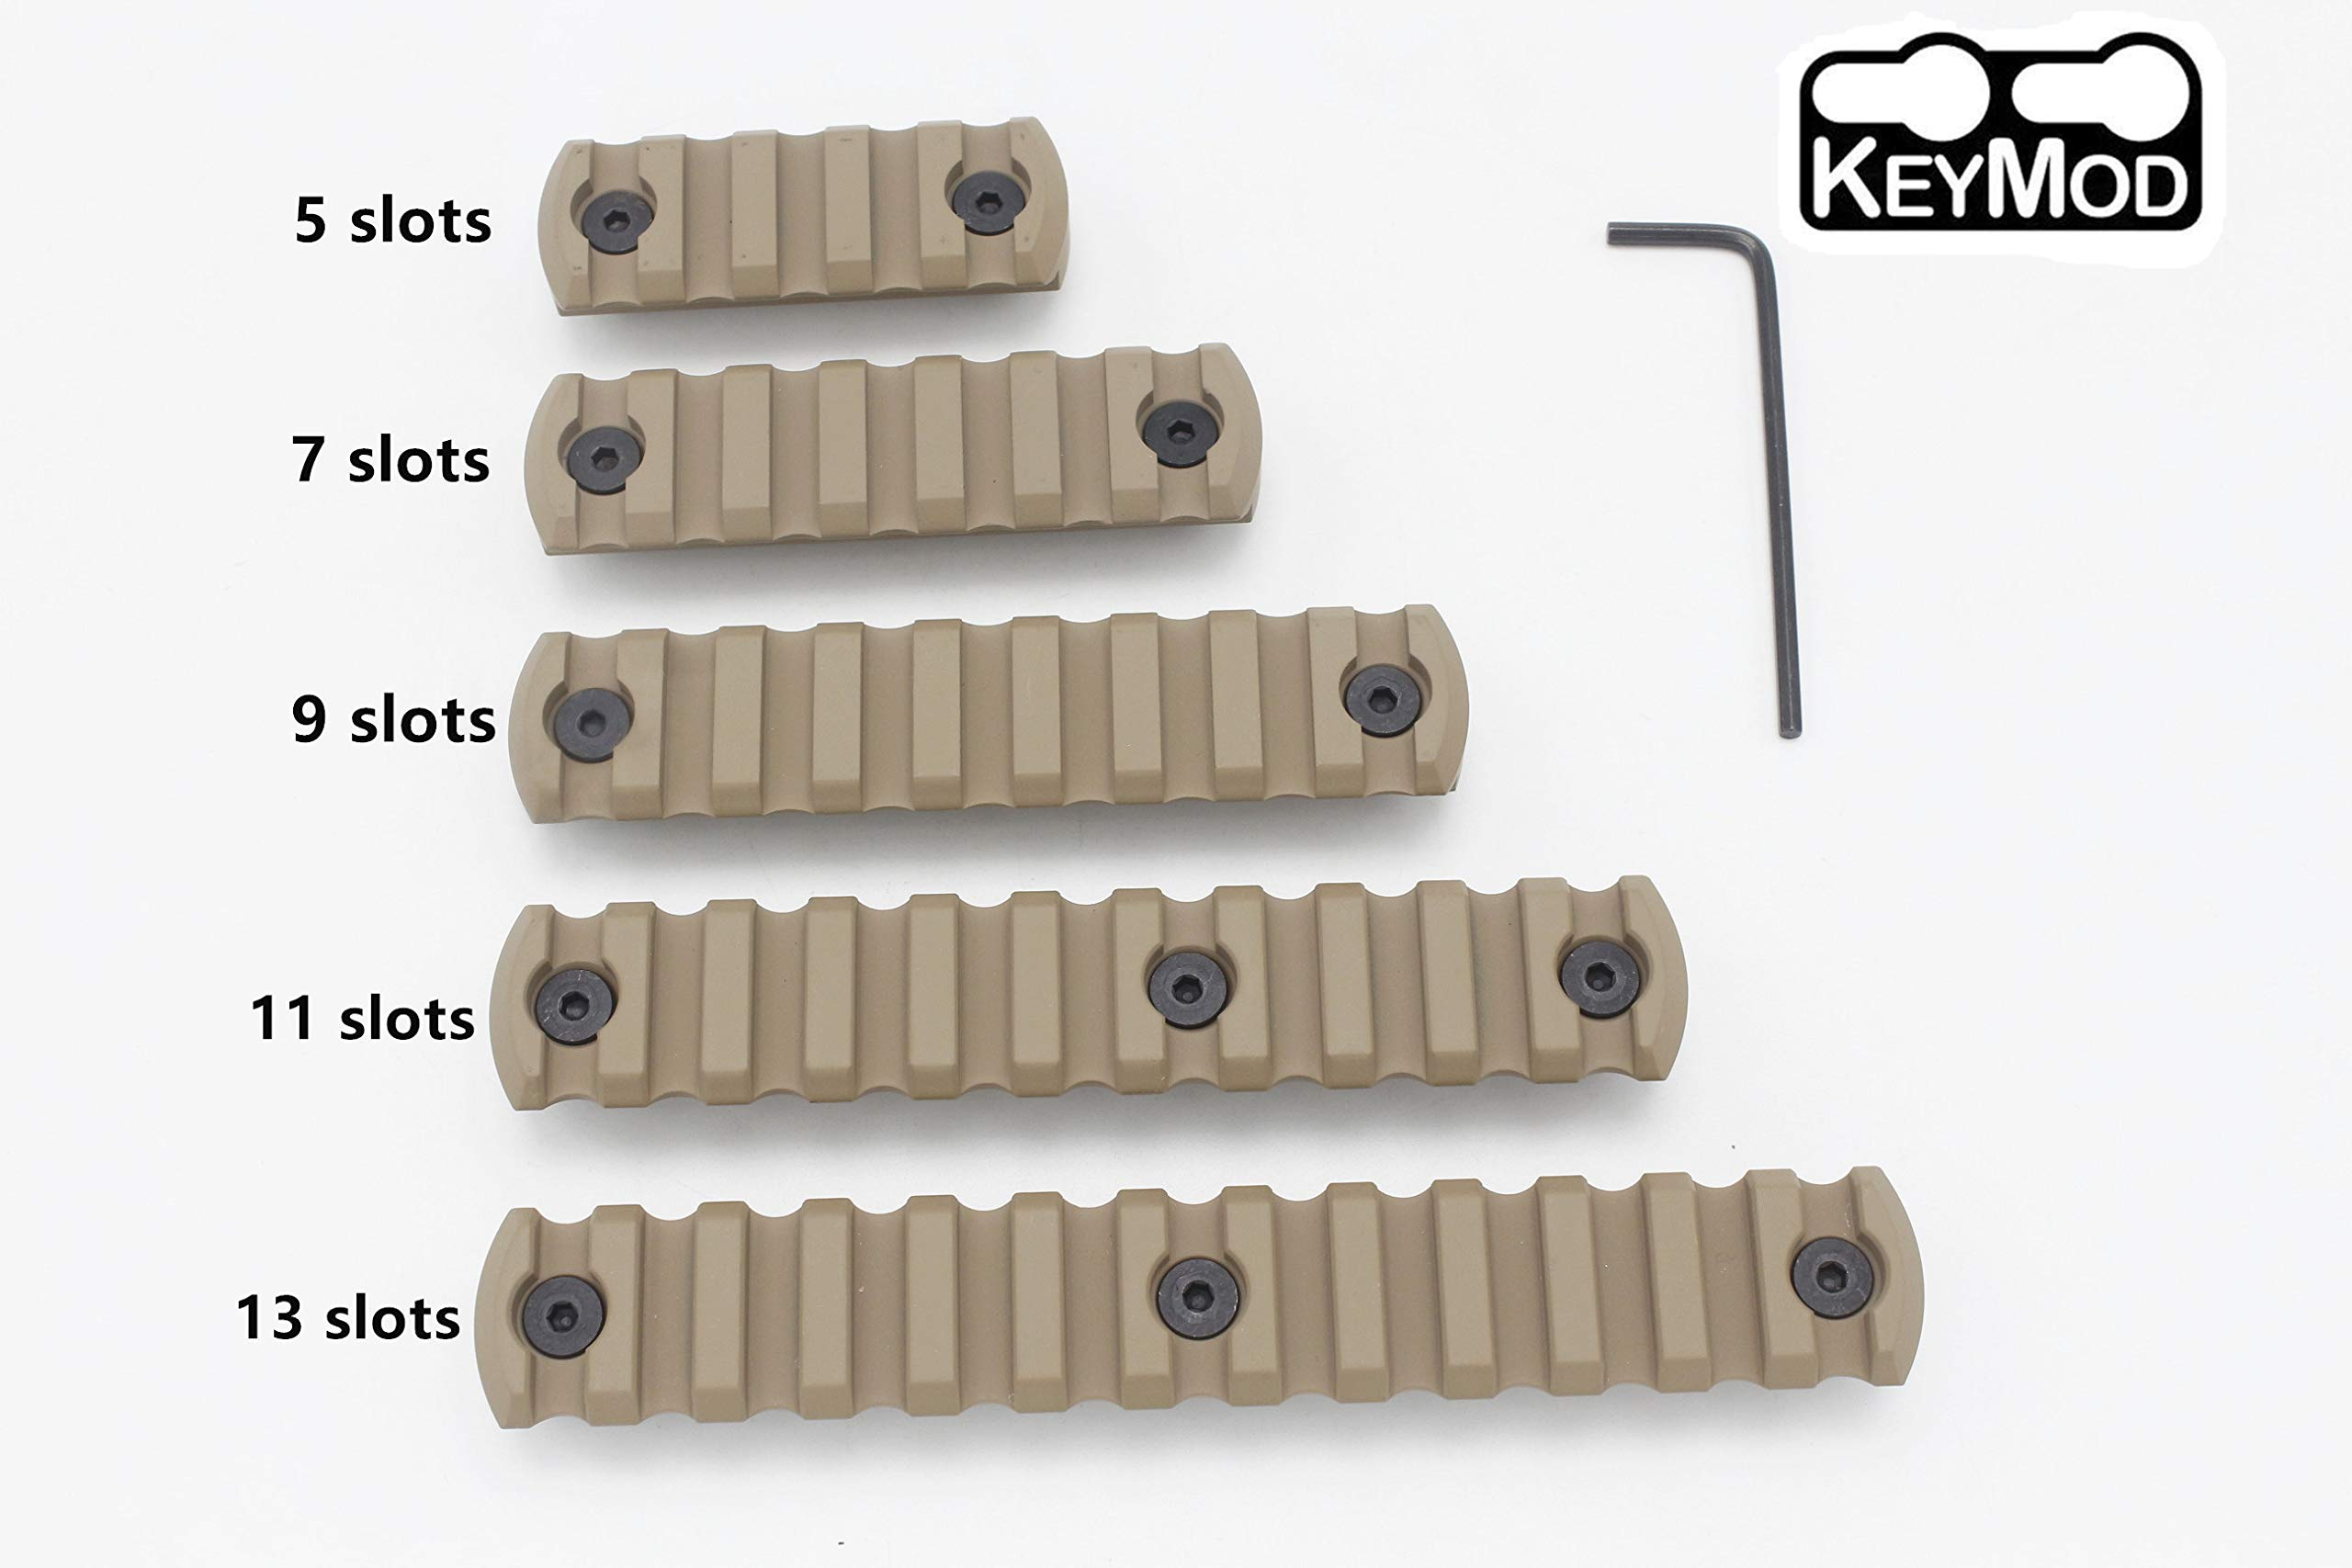 Keymod Picatinny Rail, 5-7-9-11-13Slot Lightweight Aluminum Weaver Rail Section Accessories for Keymod Rail System by Active-8